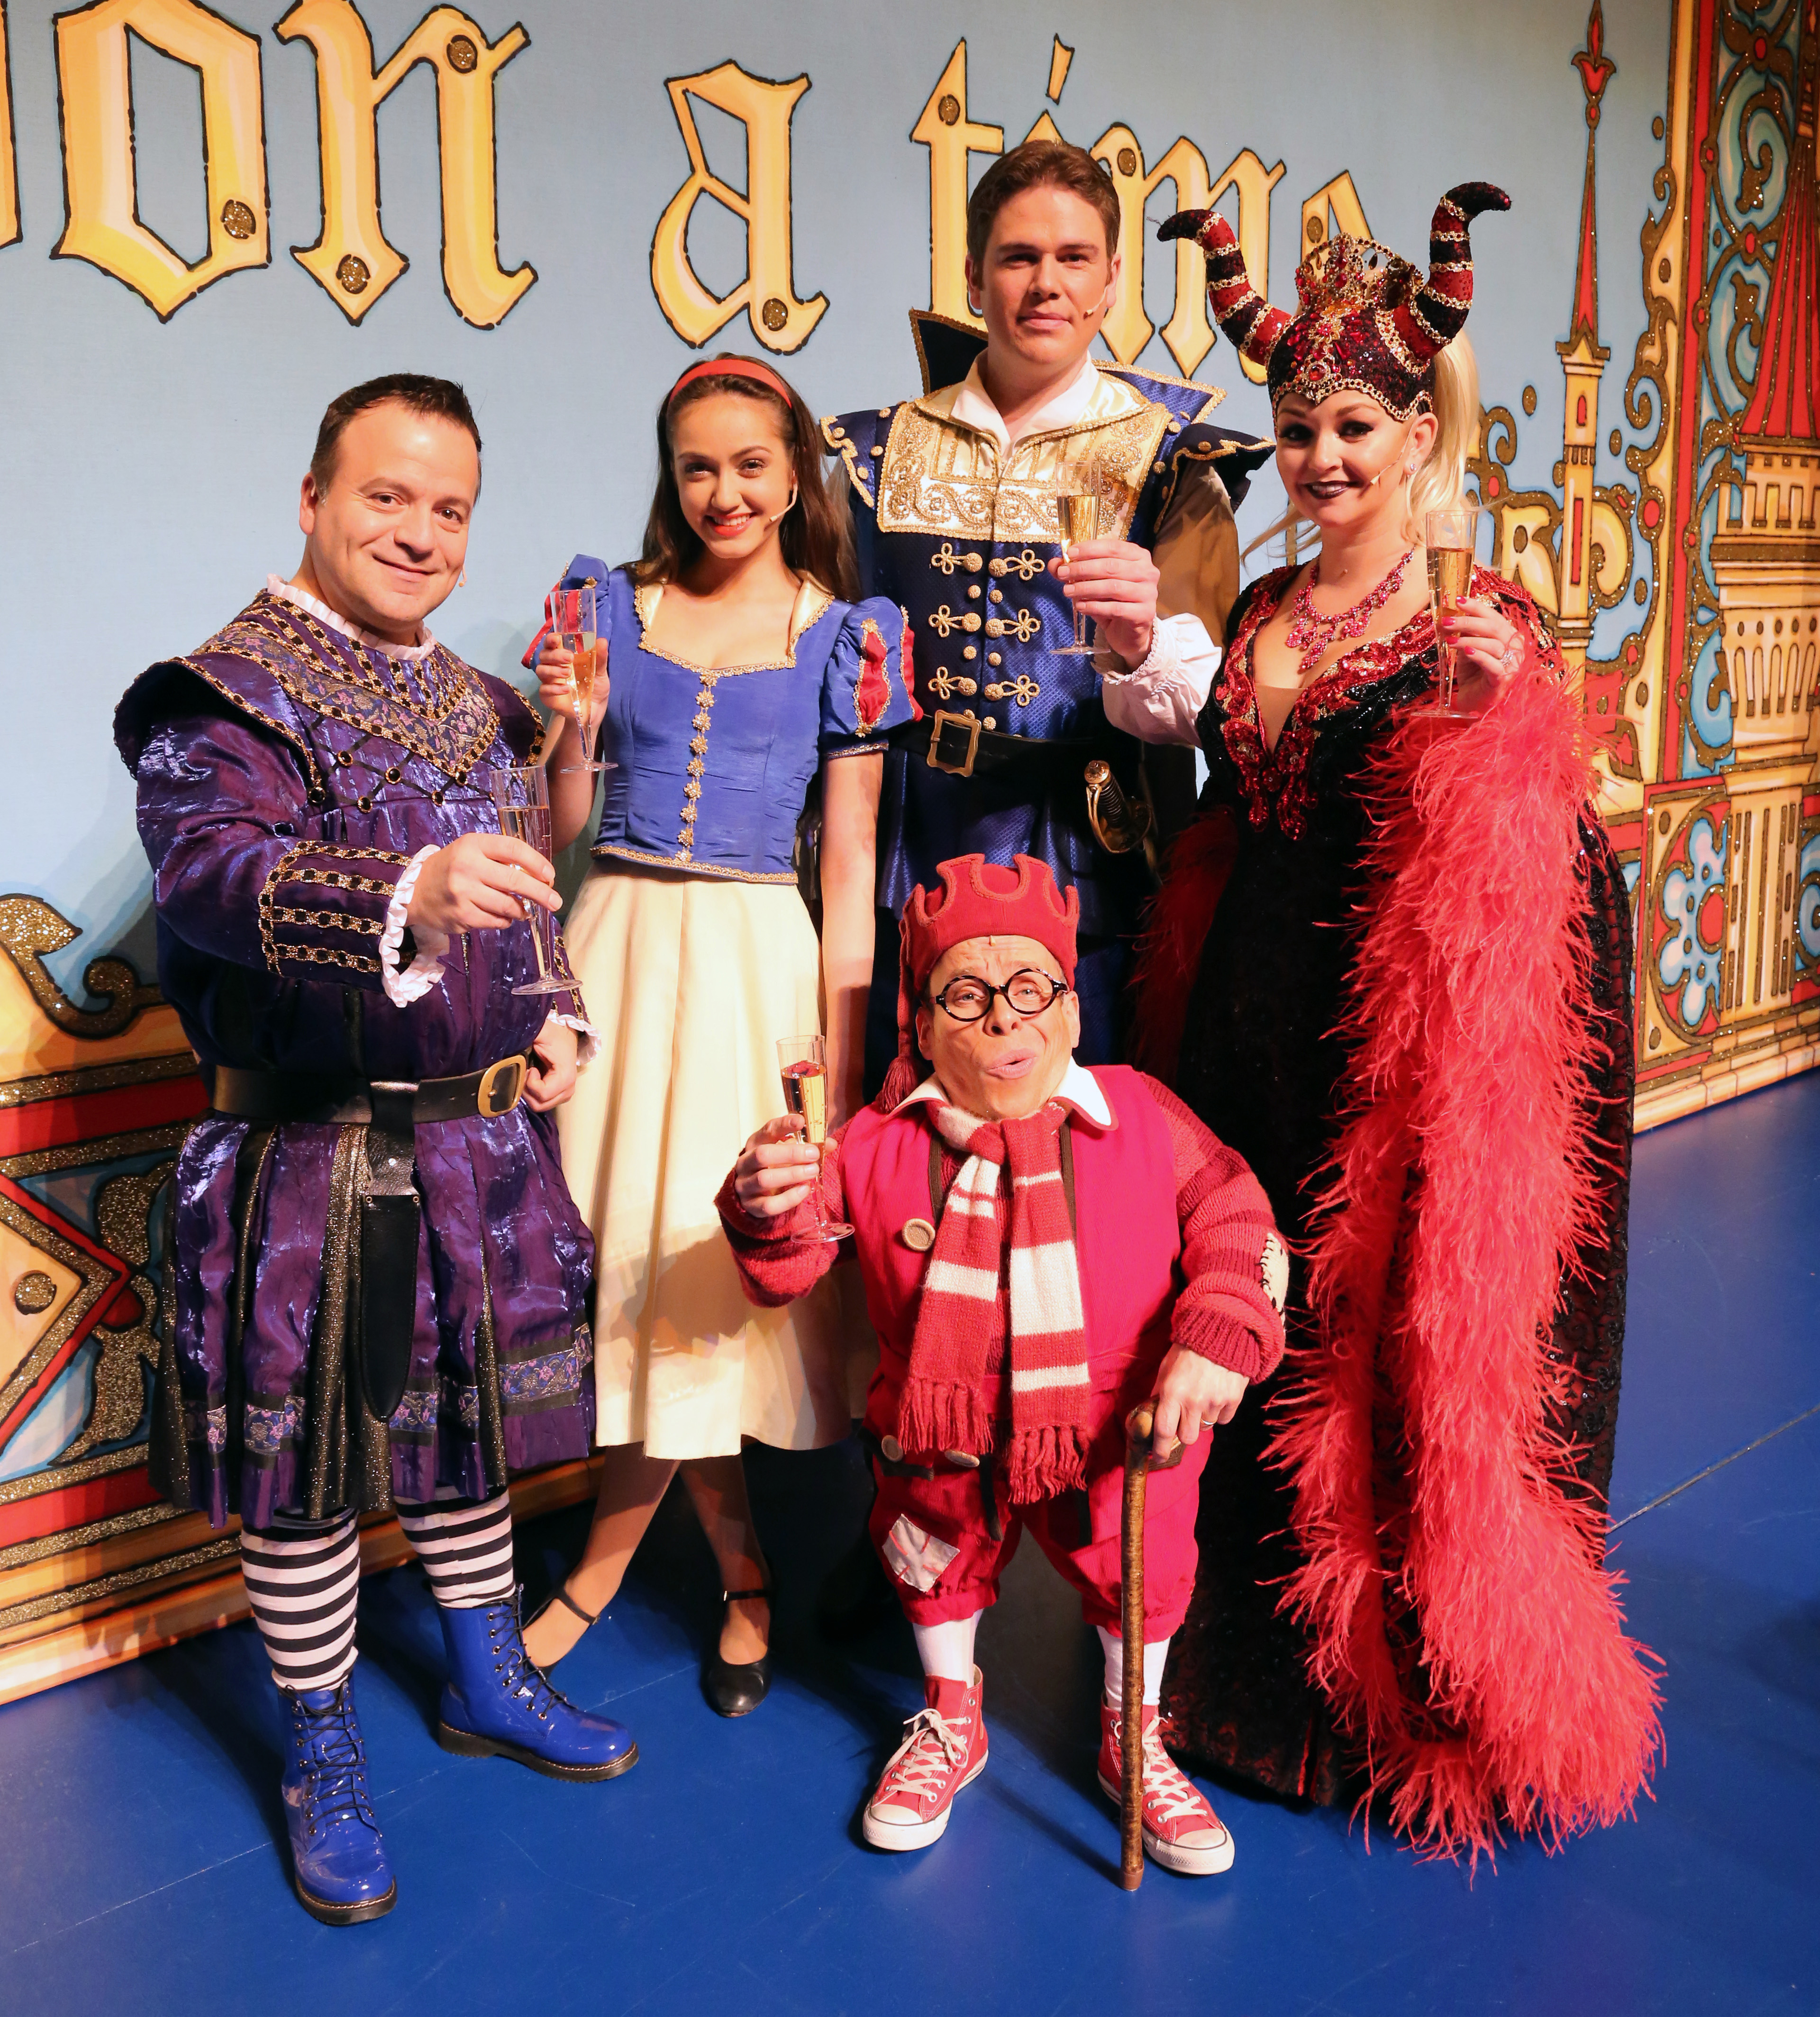 Snow White and the Seven Dwarfs. Milton Keynes Theatre pantomime, Christmas 2013. Kev Orkian, Kate Stewart, Shaun Dalton, Warwick Davis and Jennifer Ellison.